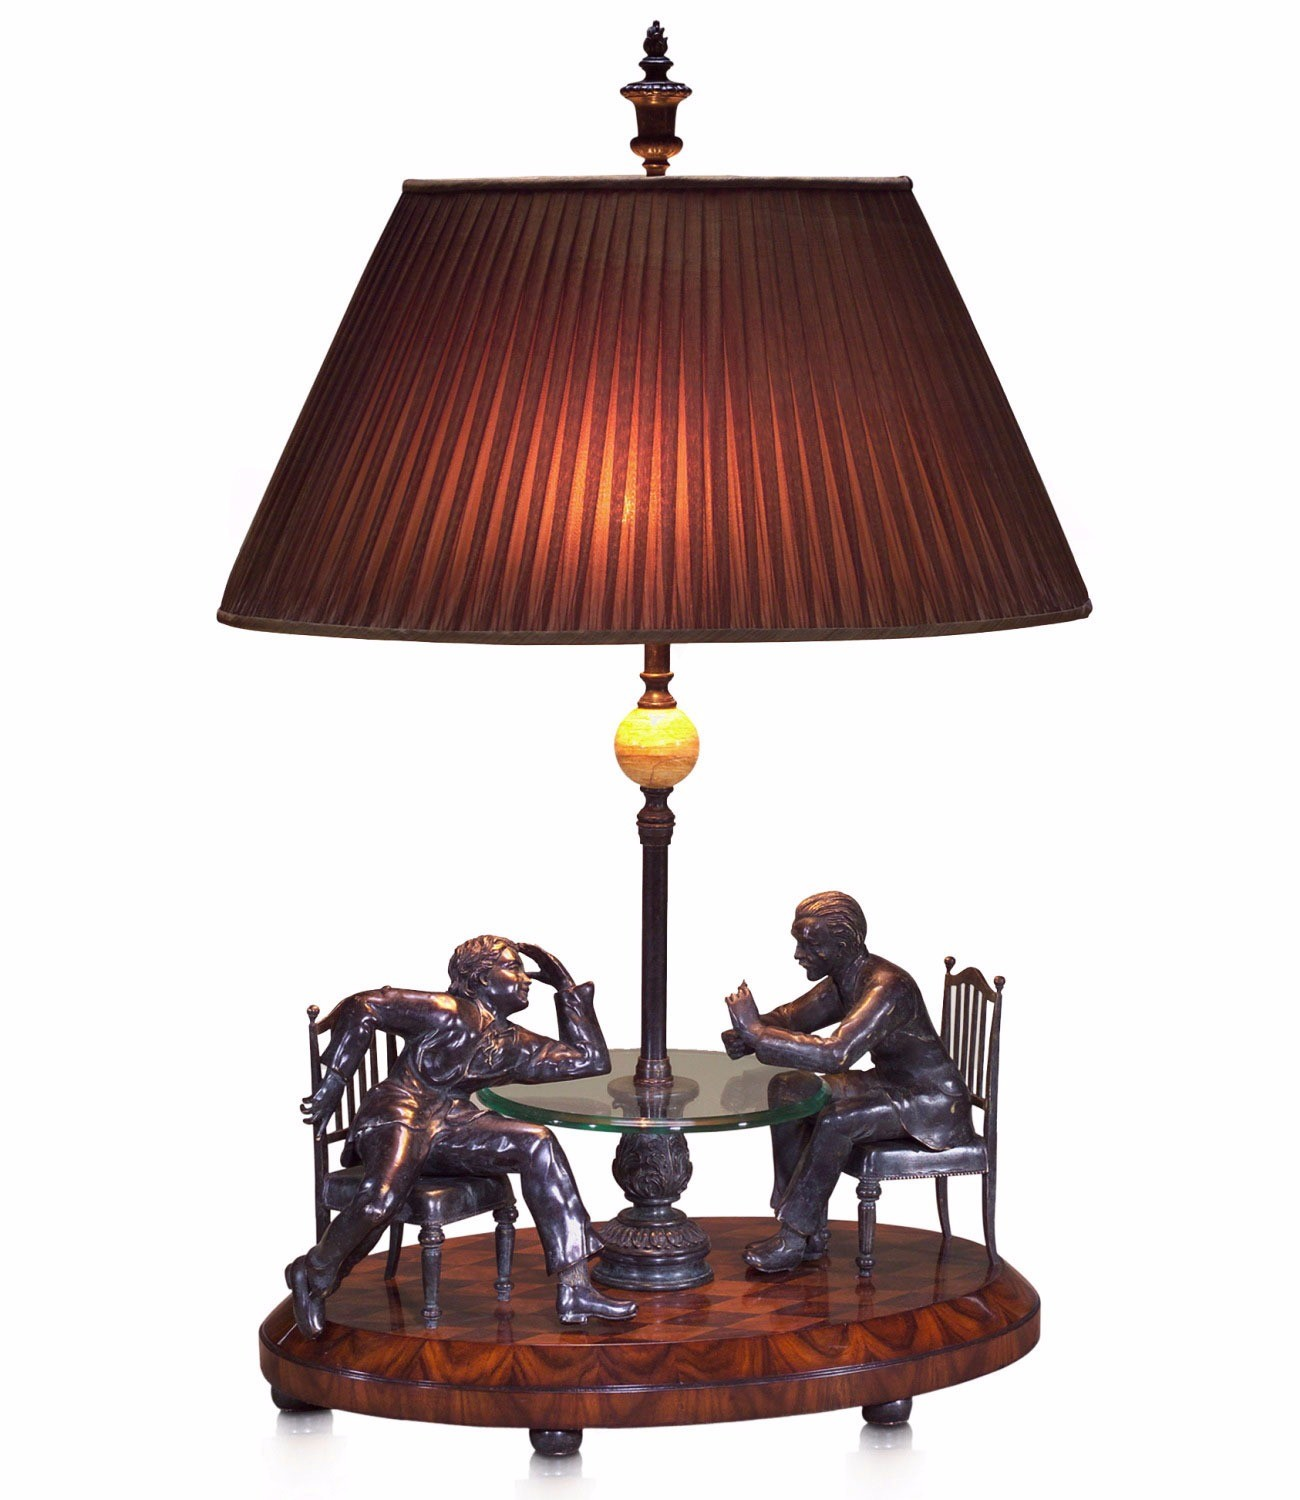 Brass and rosewood table lamp